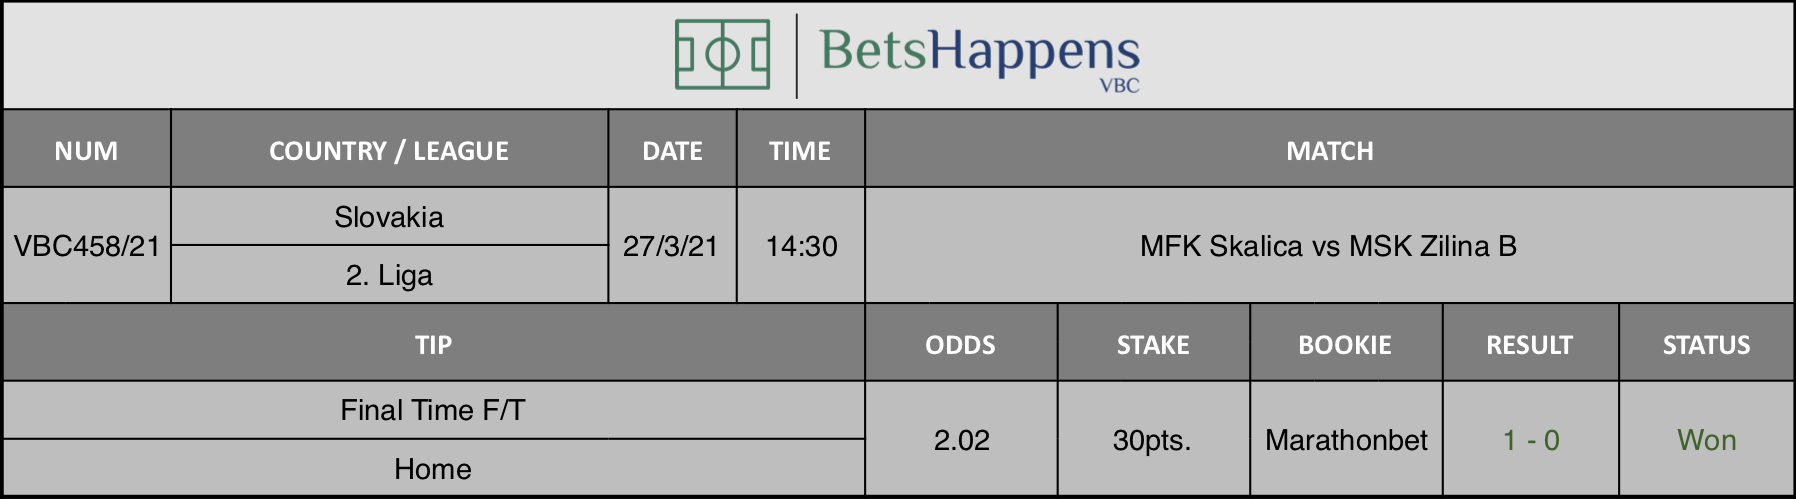 Results of our tip for the MFK Skalica vs MSK Zilina B match where Final Time - F/T Home is recommended.